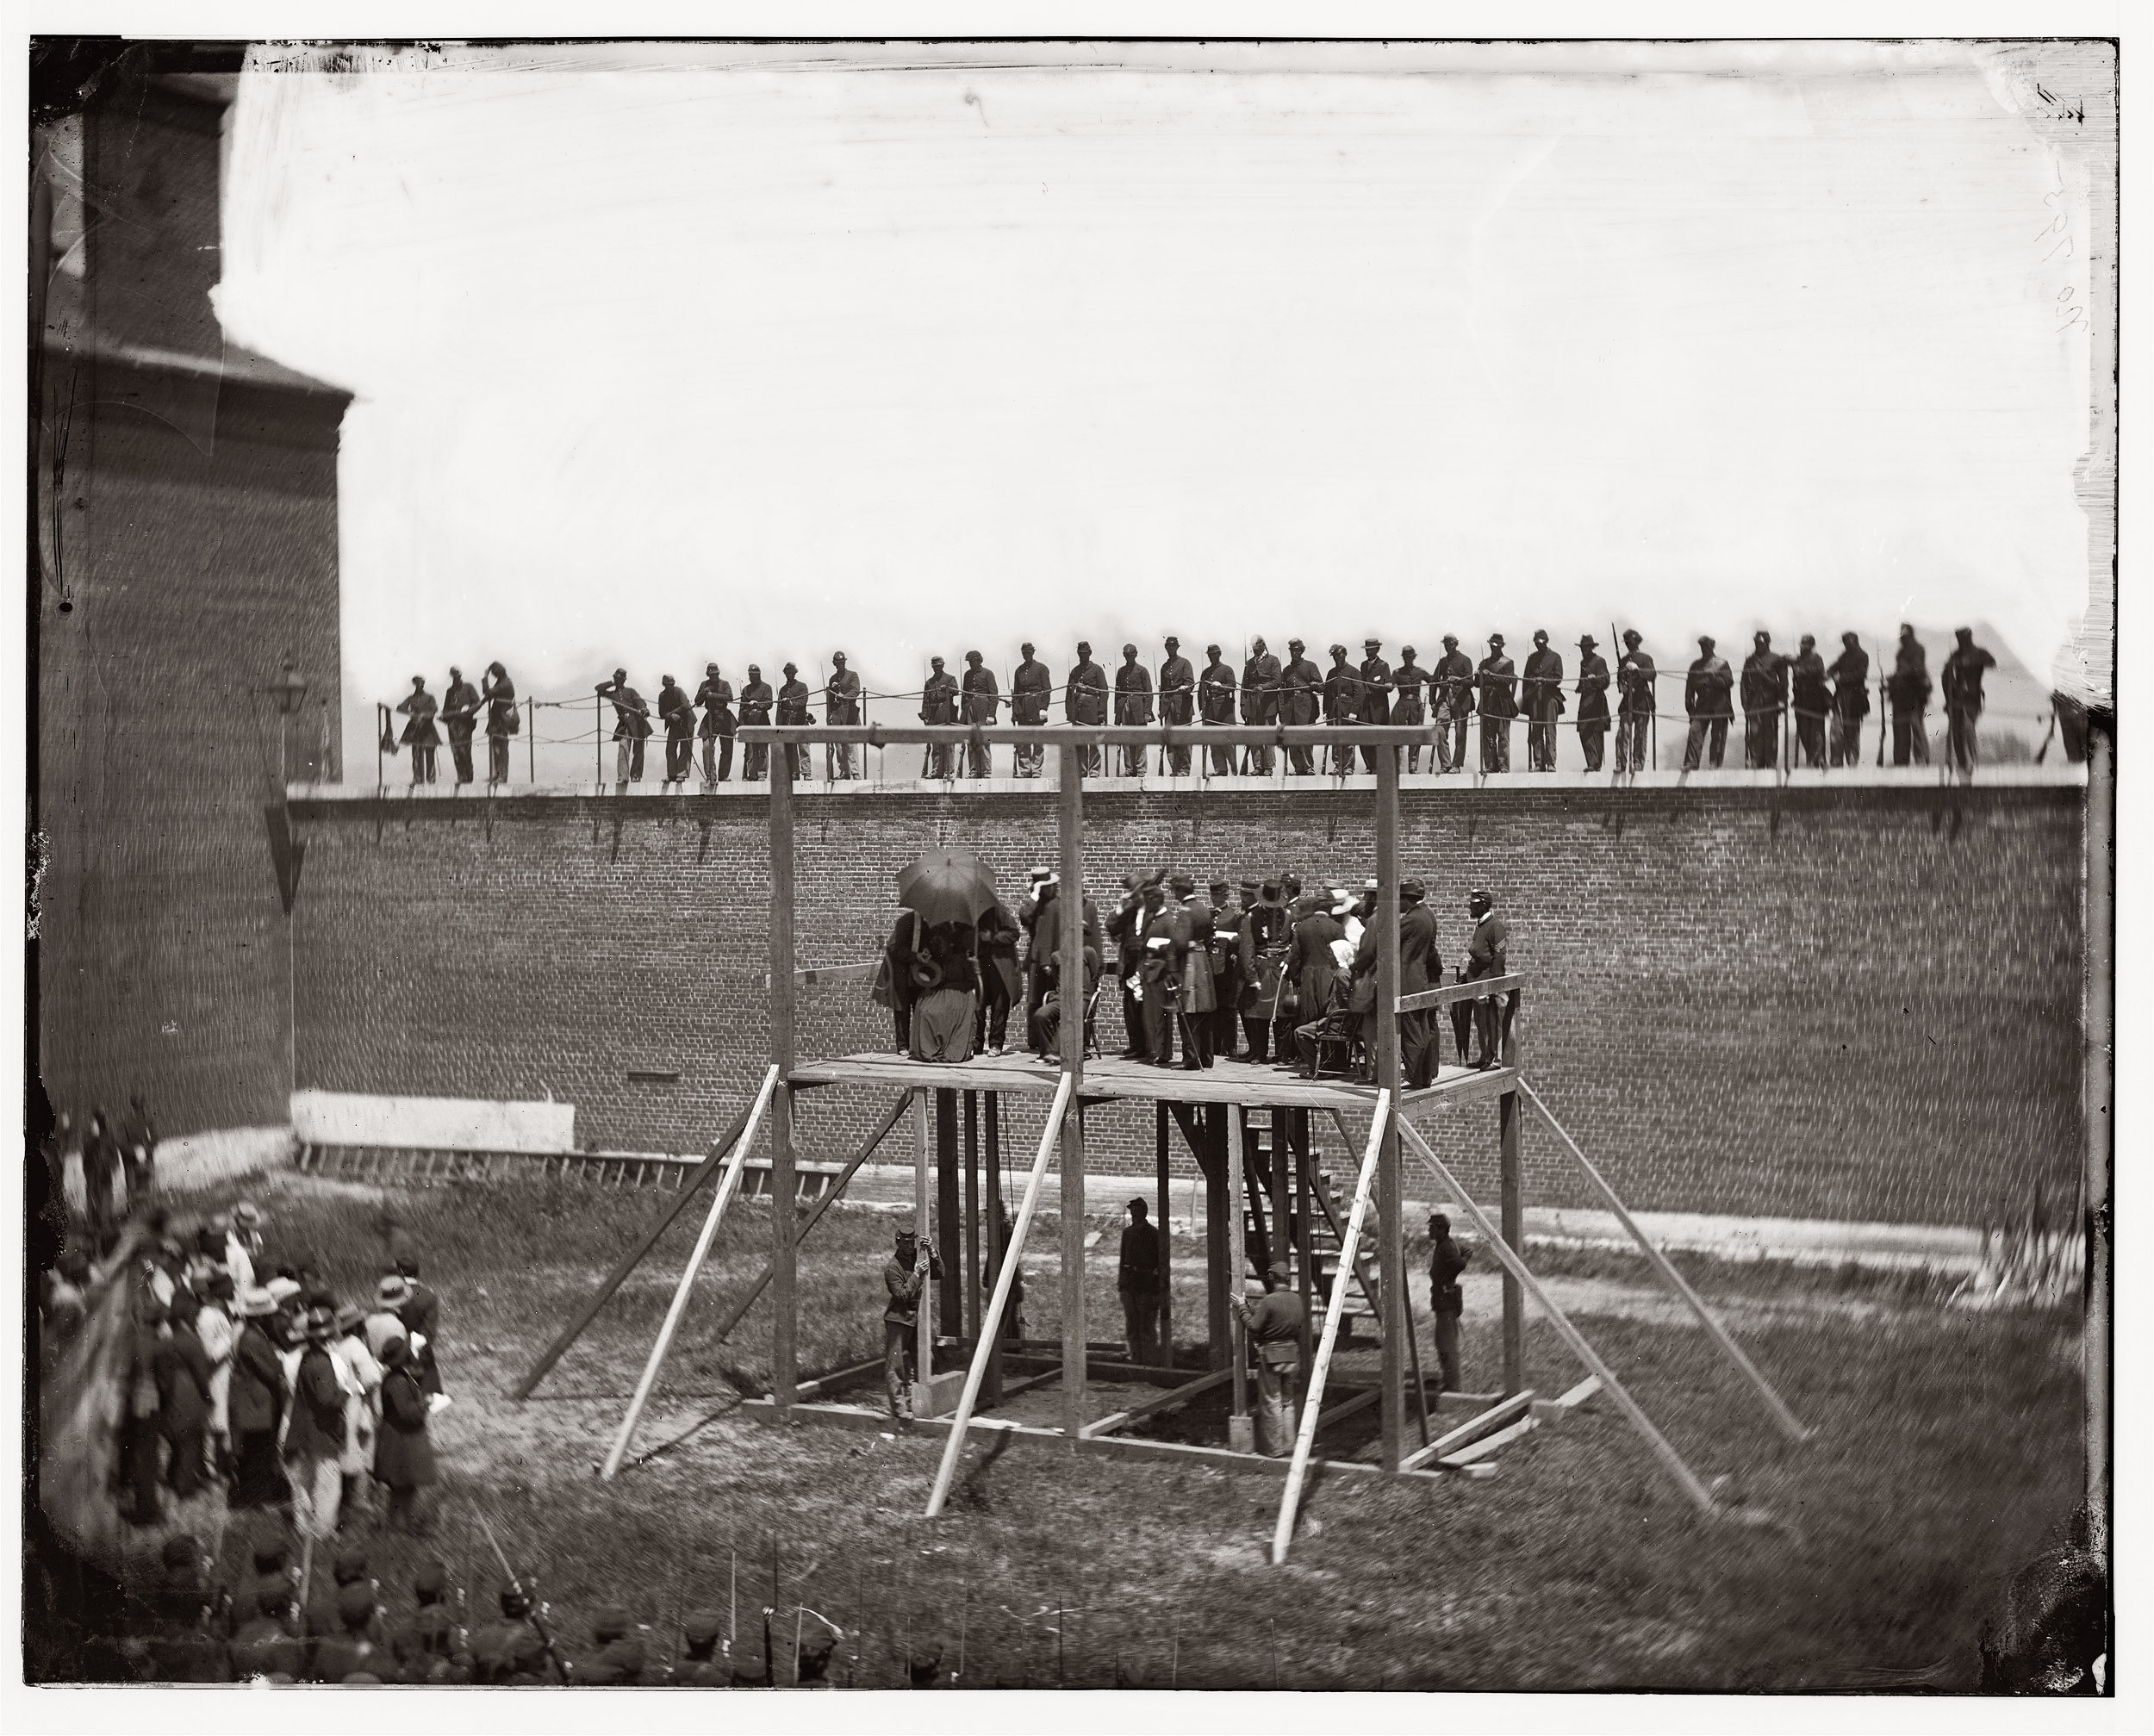 Execution Day: July 7, 1865